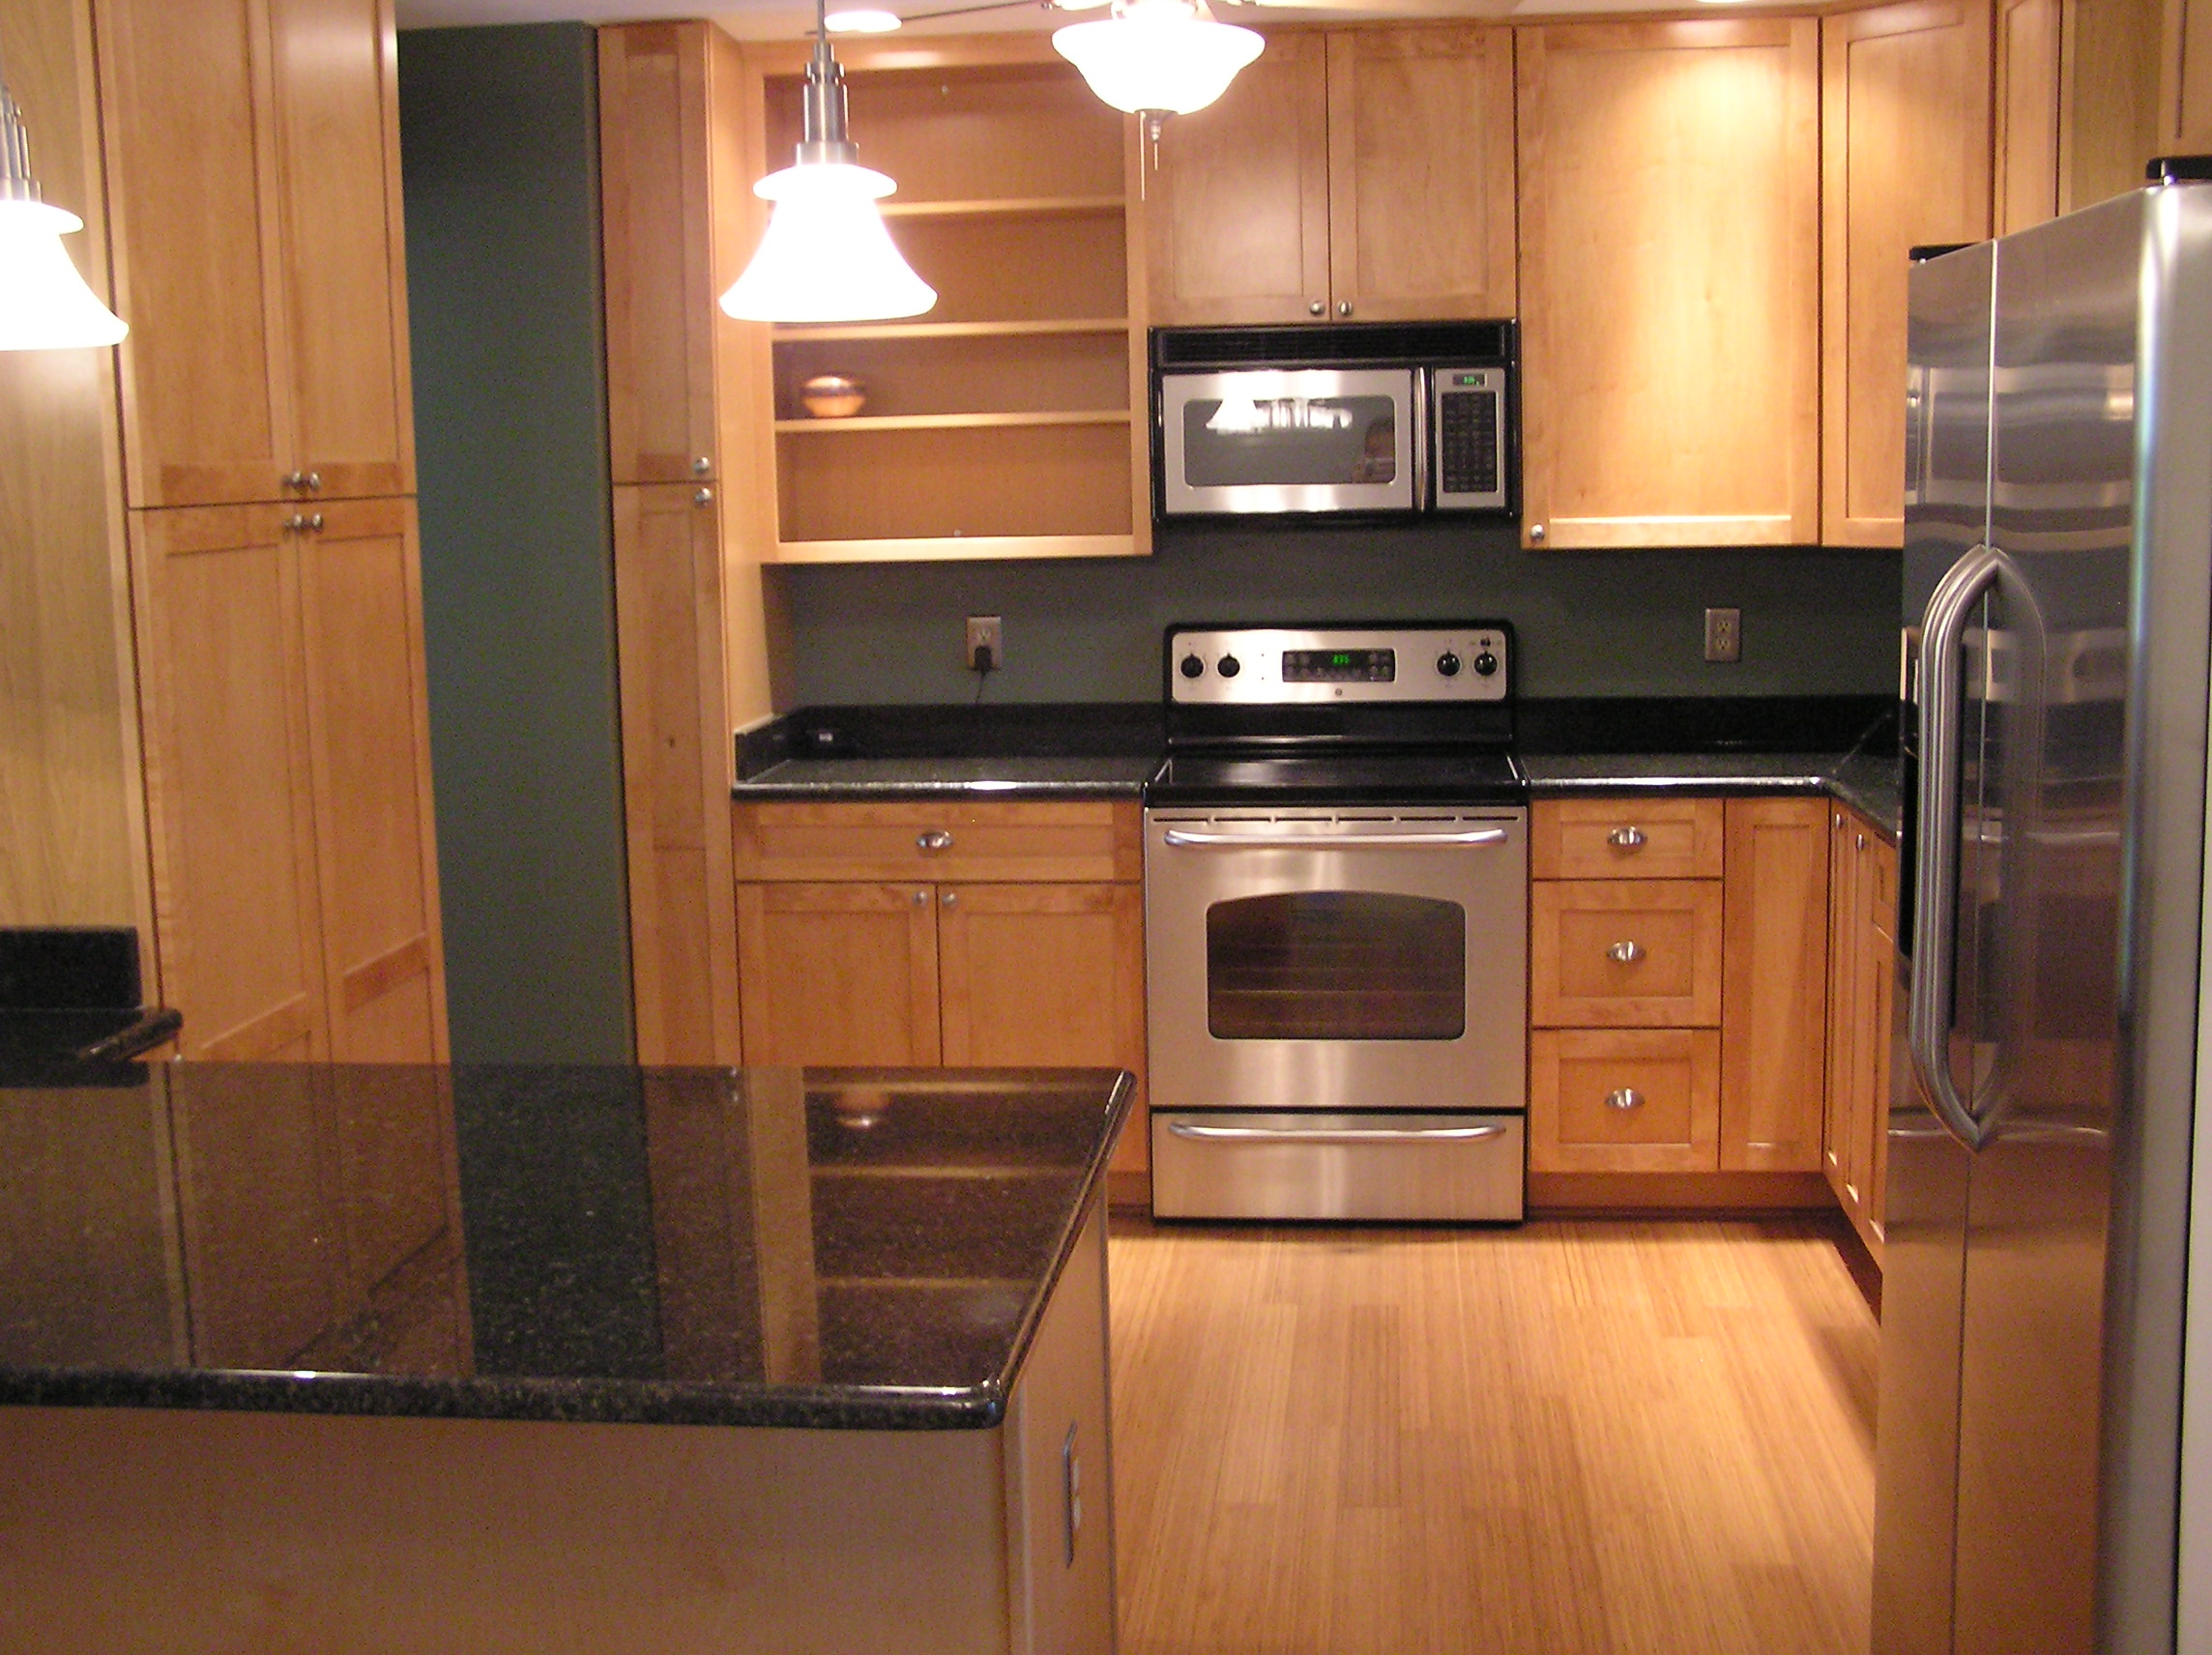 home depot kitchen design ideas photo - 4